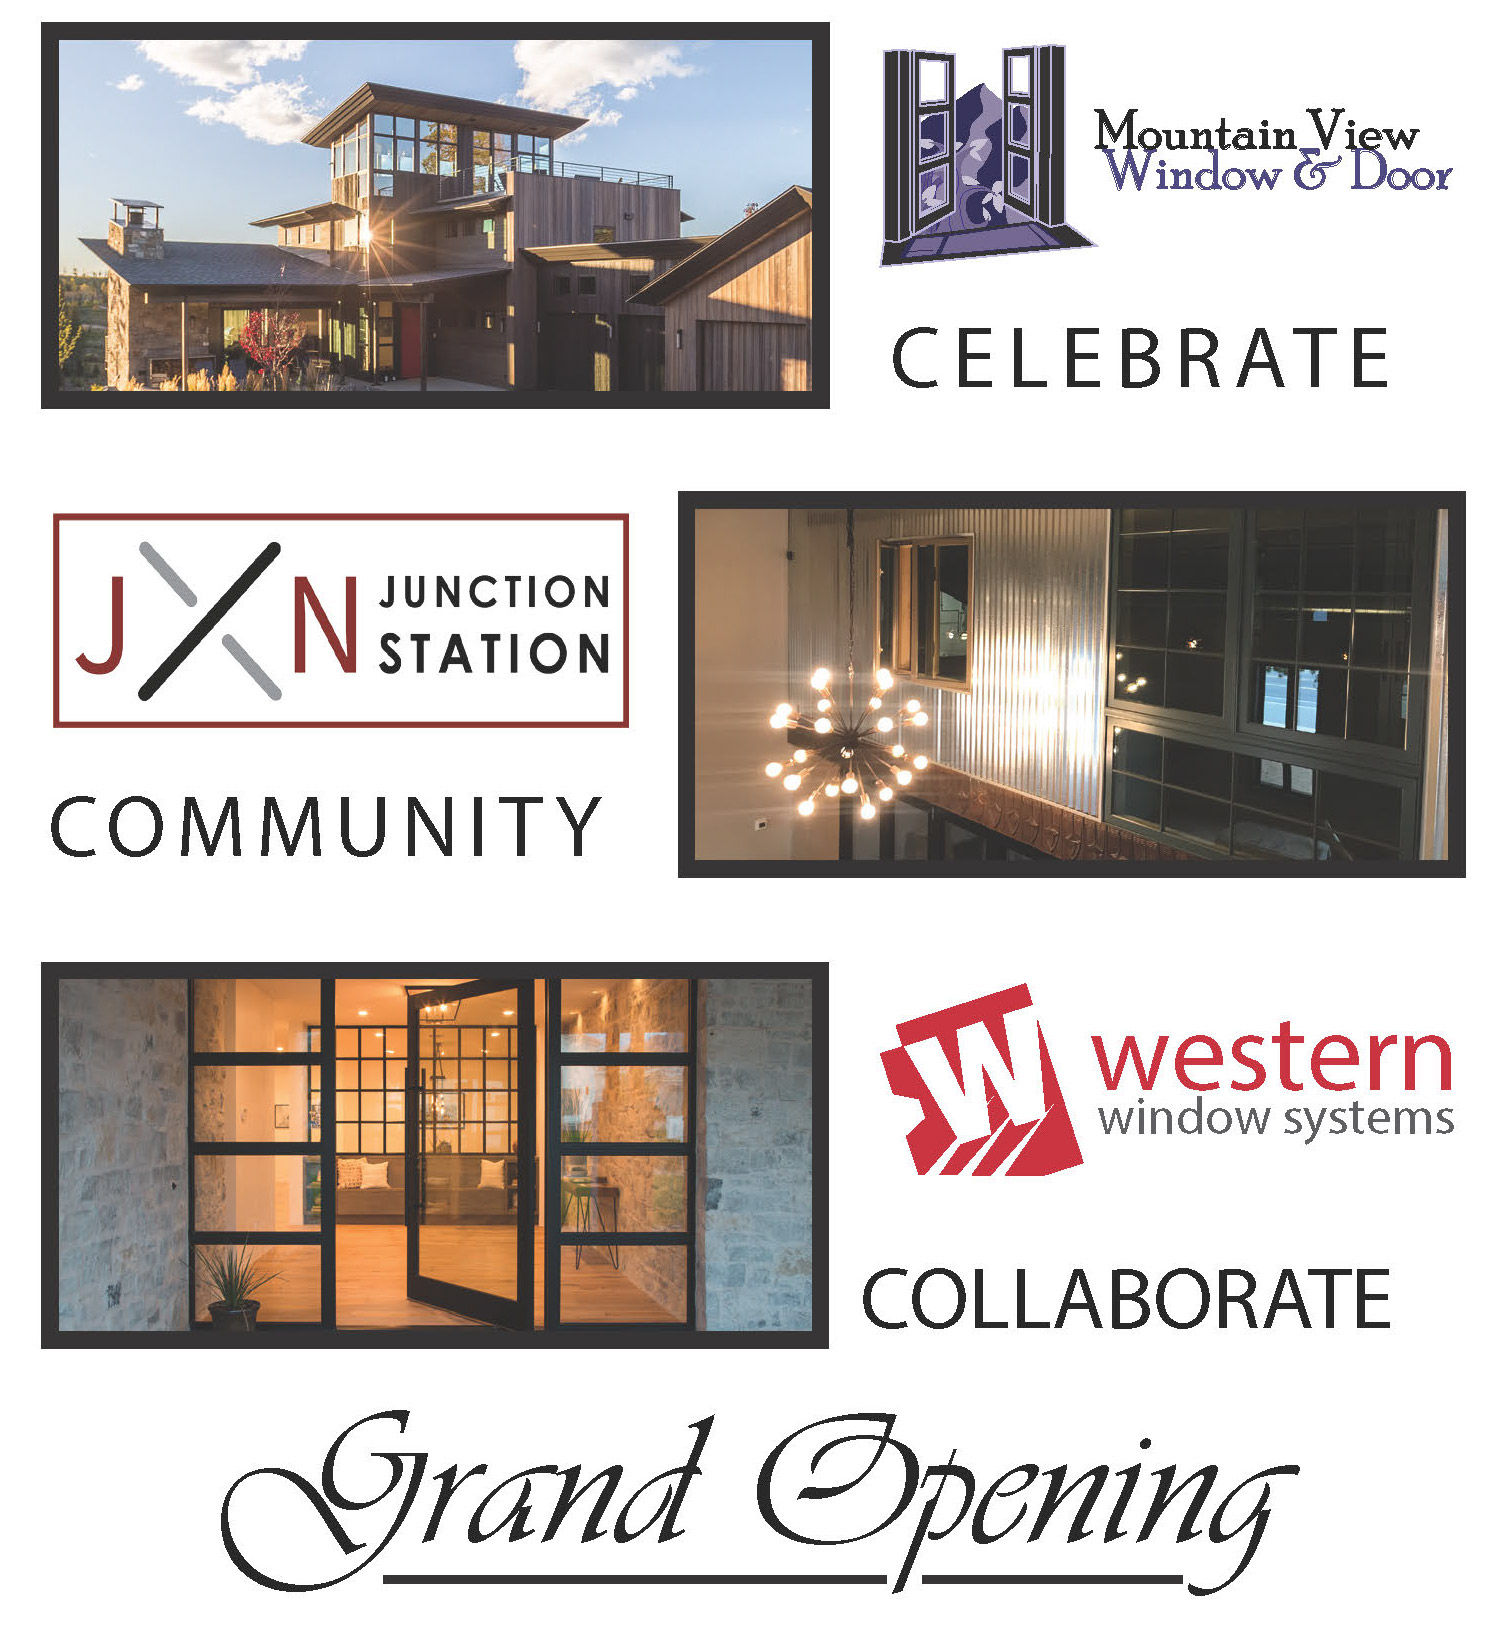 Grand Opening In Junction Invite